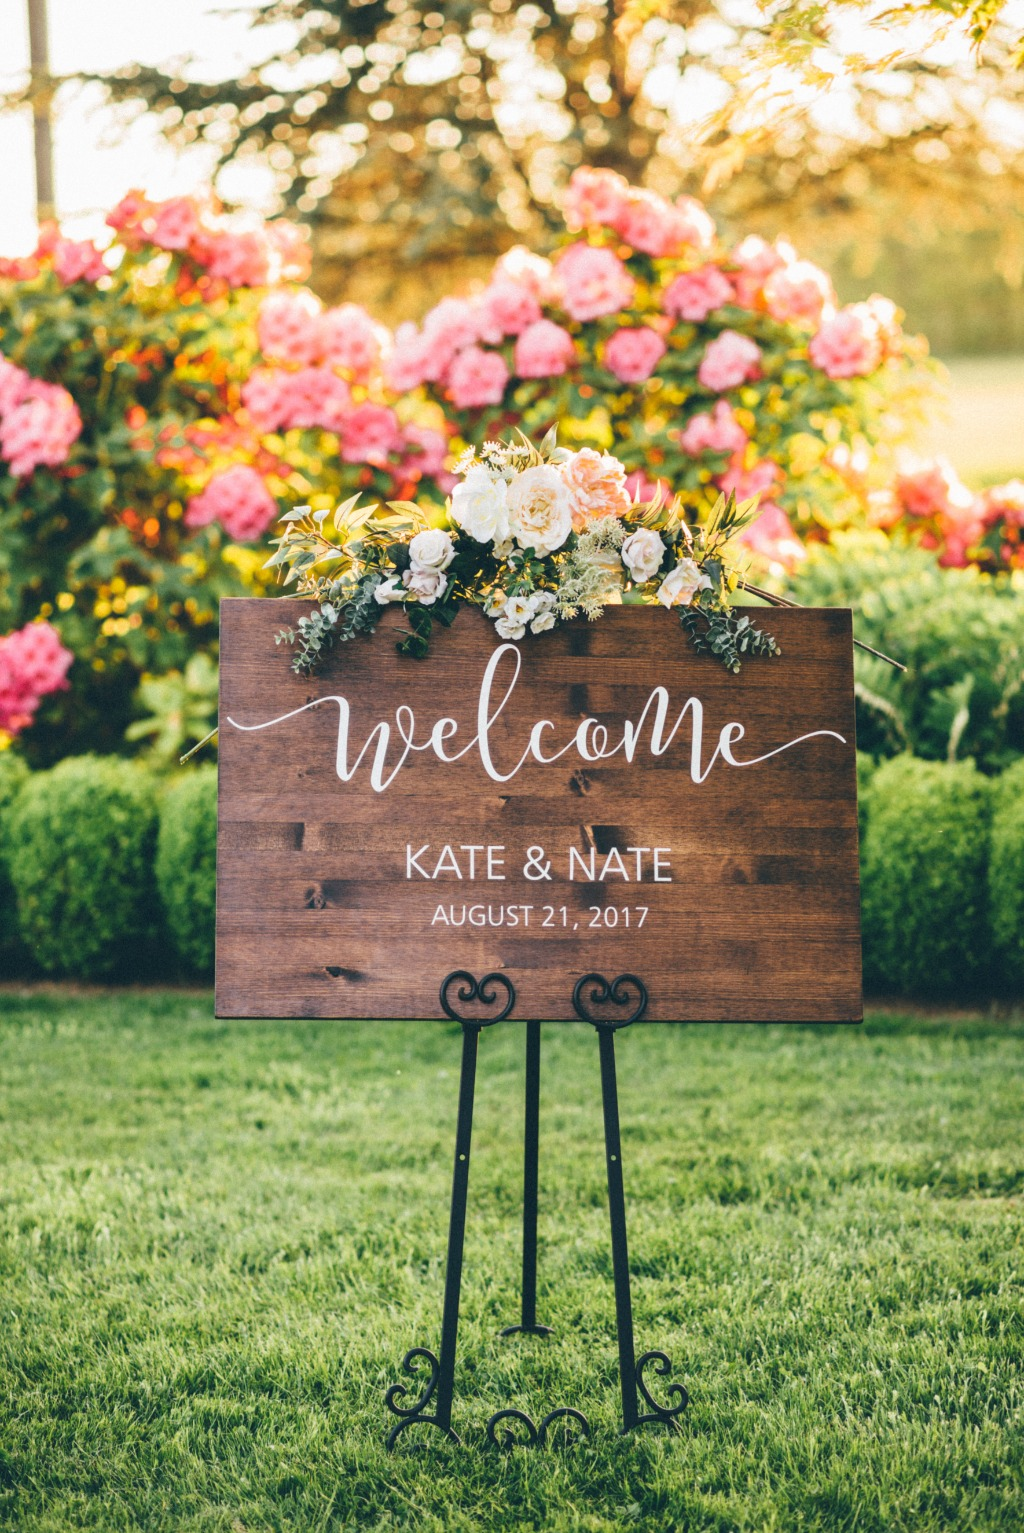 Shopping for the perfect wedding welcome sign? Shop from our collection of personalized welcome signs with your custom name and date